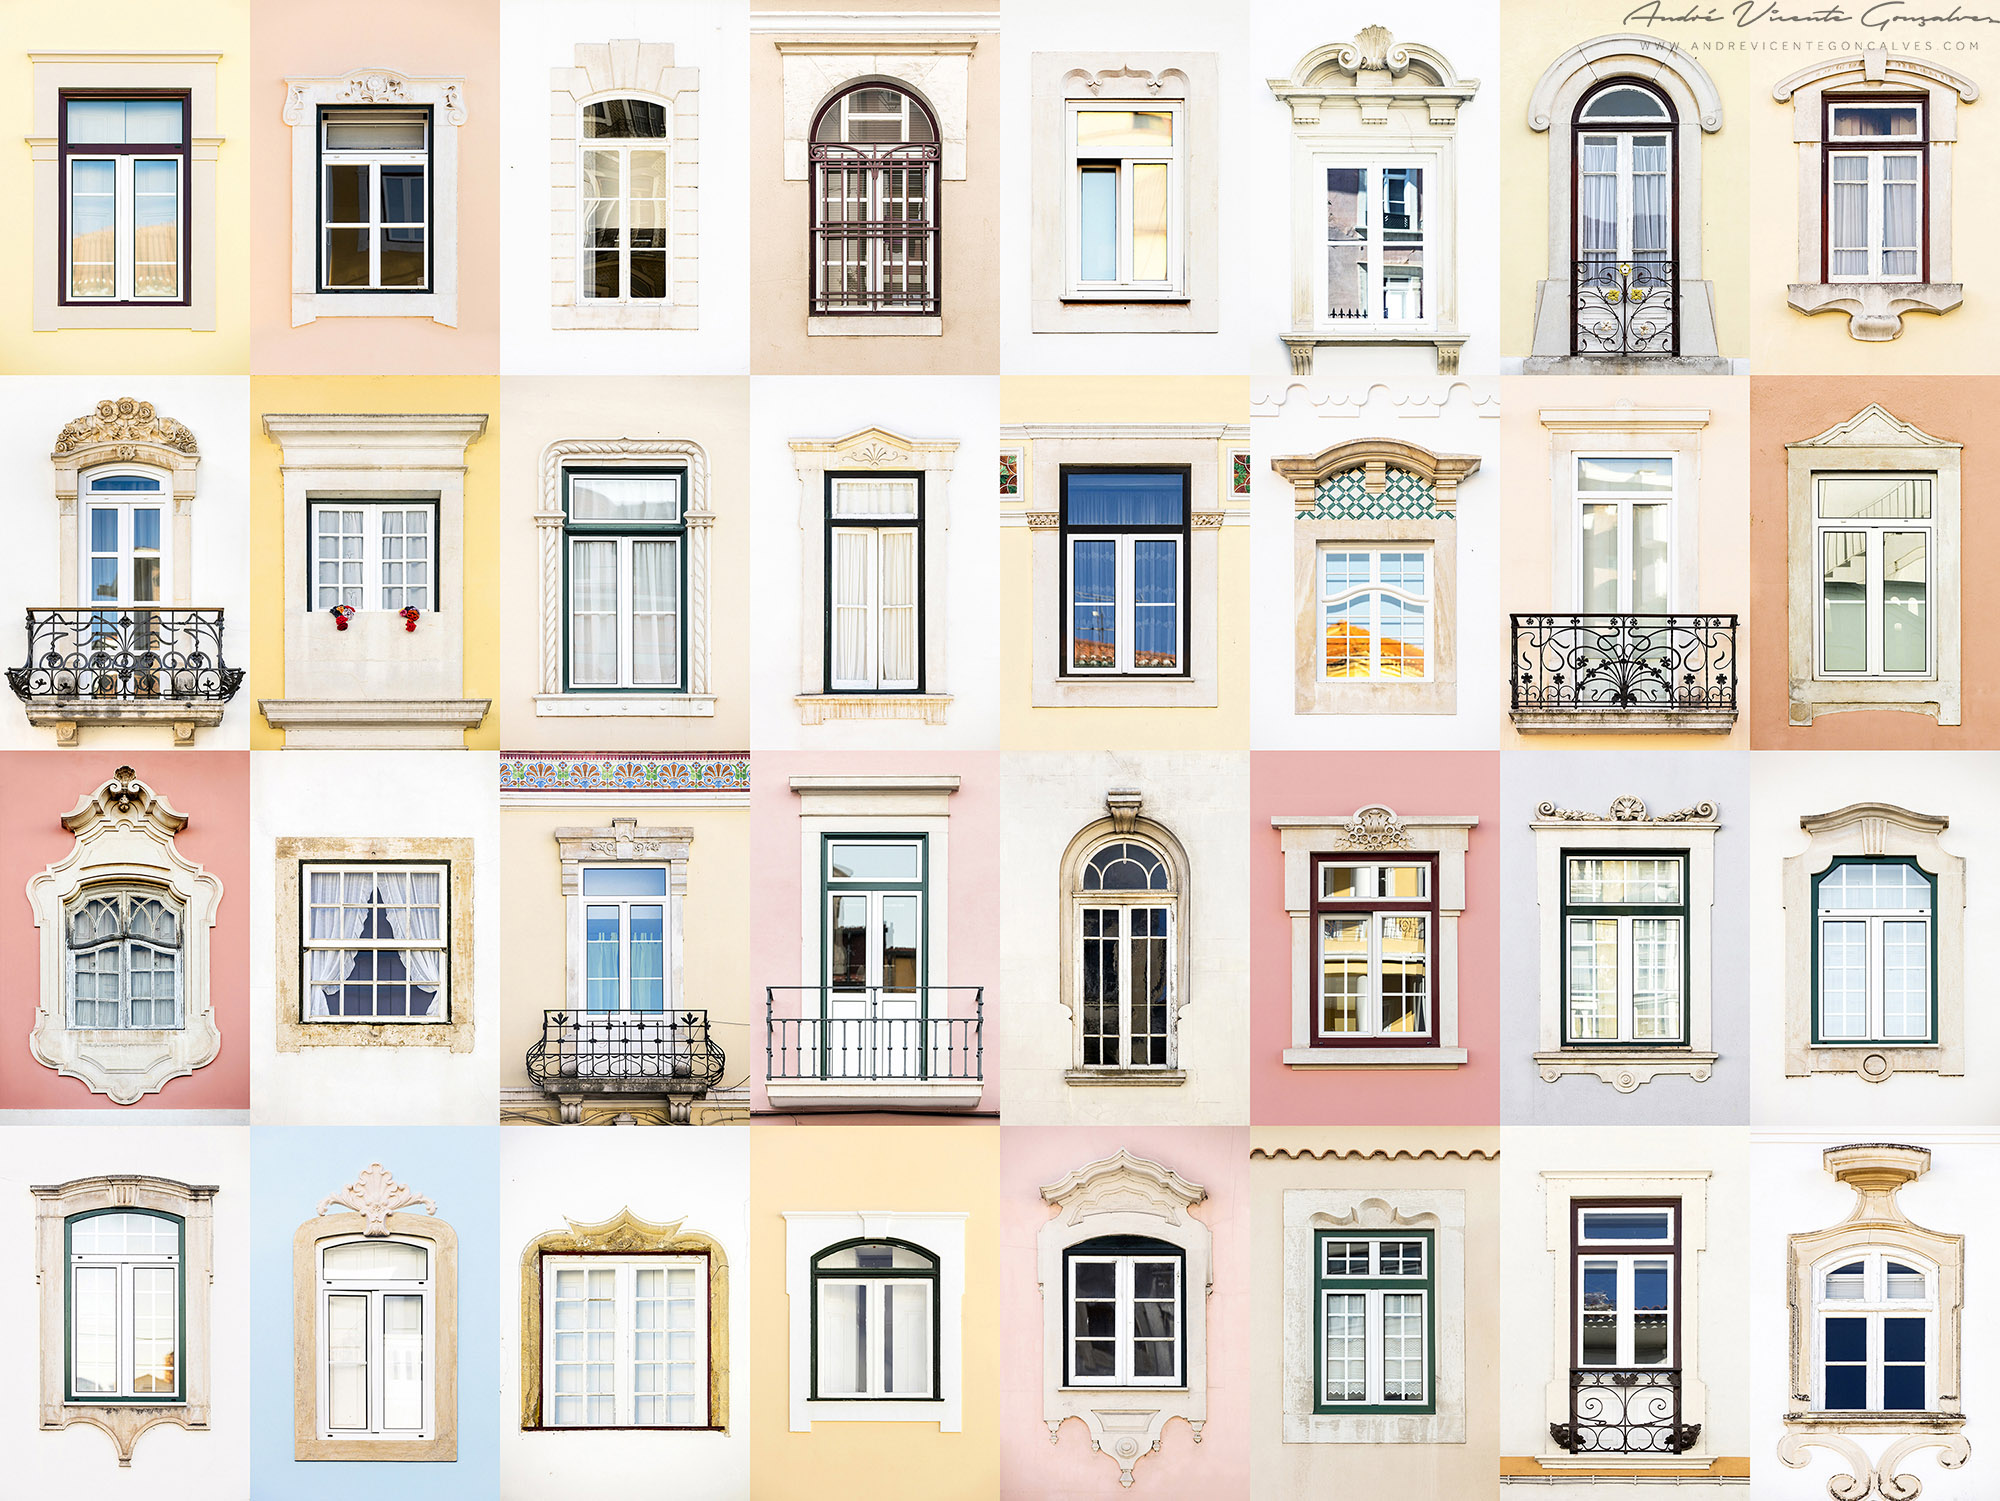 AndreVicenteGoncalves-Windows-of-the-World-Europe-Portugal-Coimbra1.jpg